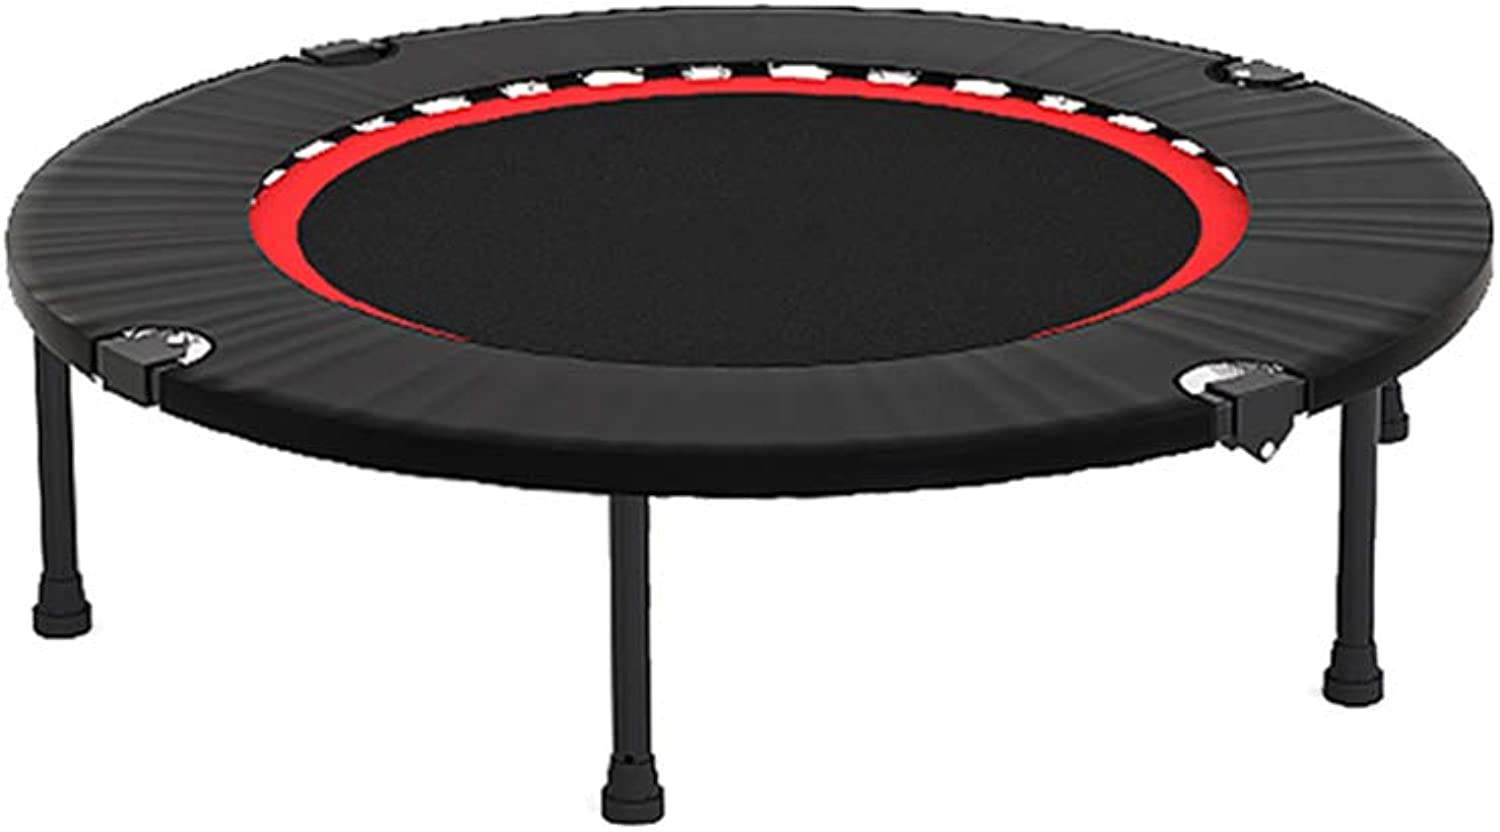 Folding 40 Inches Trampoline, with Safety Pad, for Indoor Garden Workout Cardio Training Adults  LoadBearing 250kg